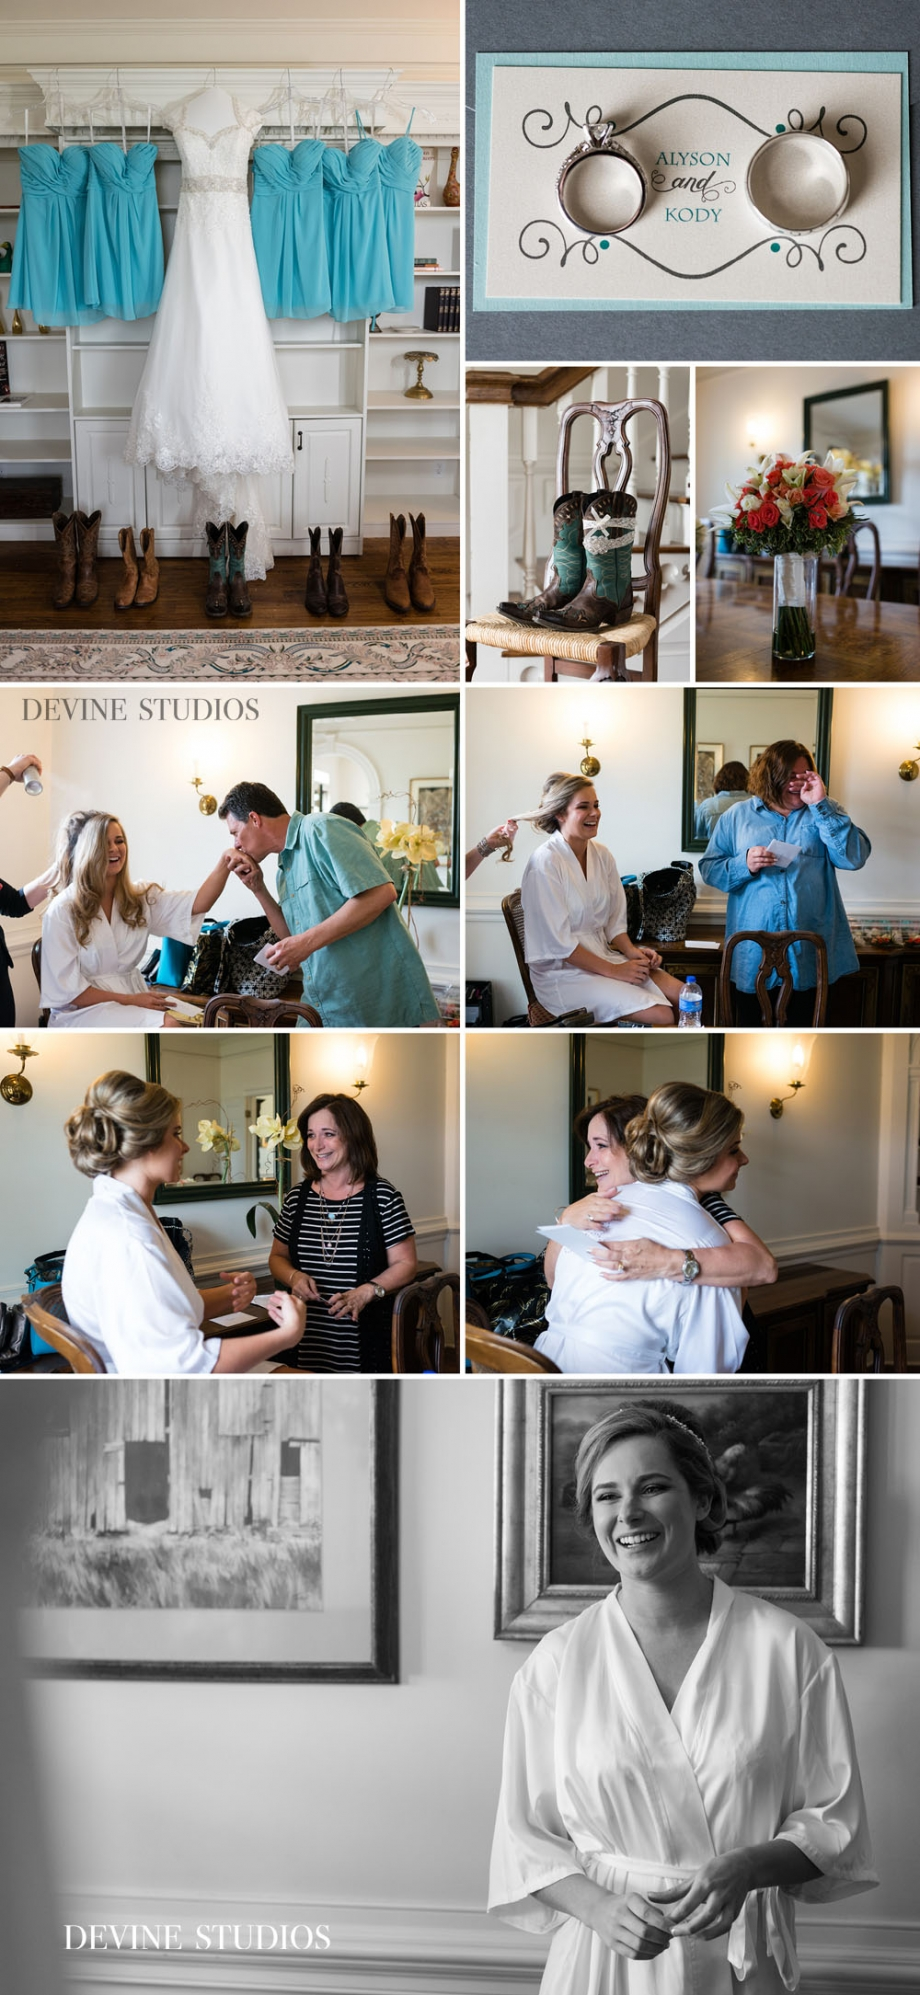 Kansas City-Wedding-Photography-Mildale Farm-Devine Studios1